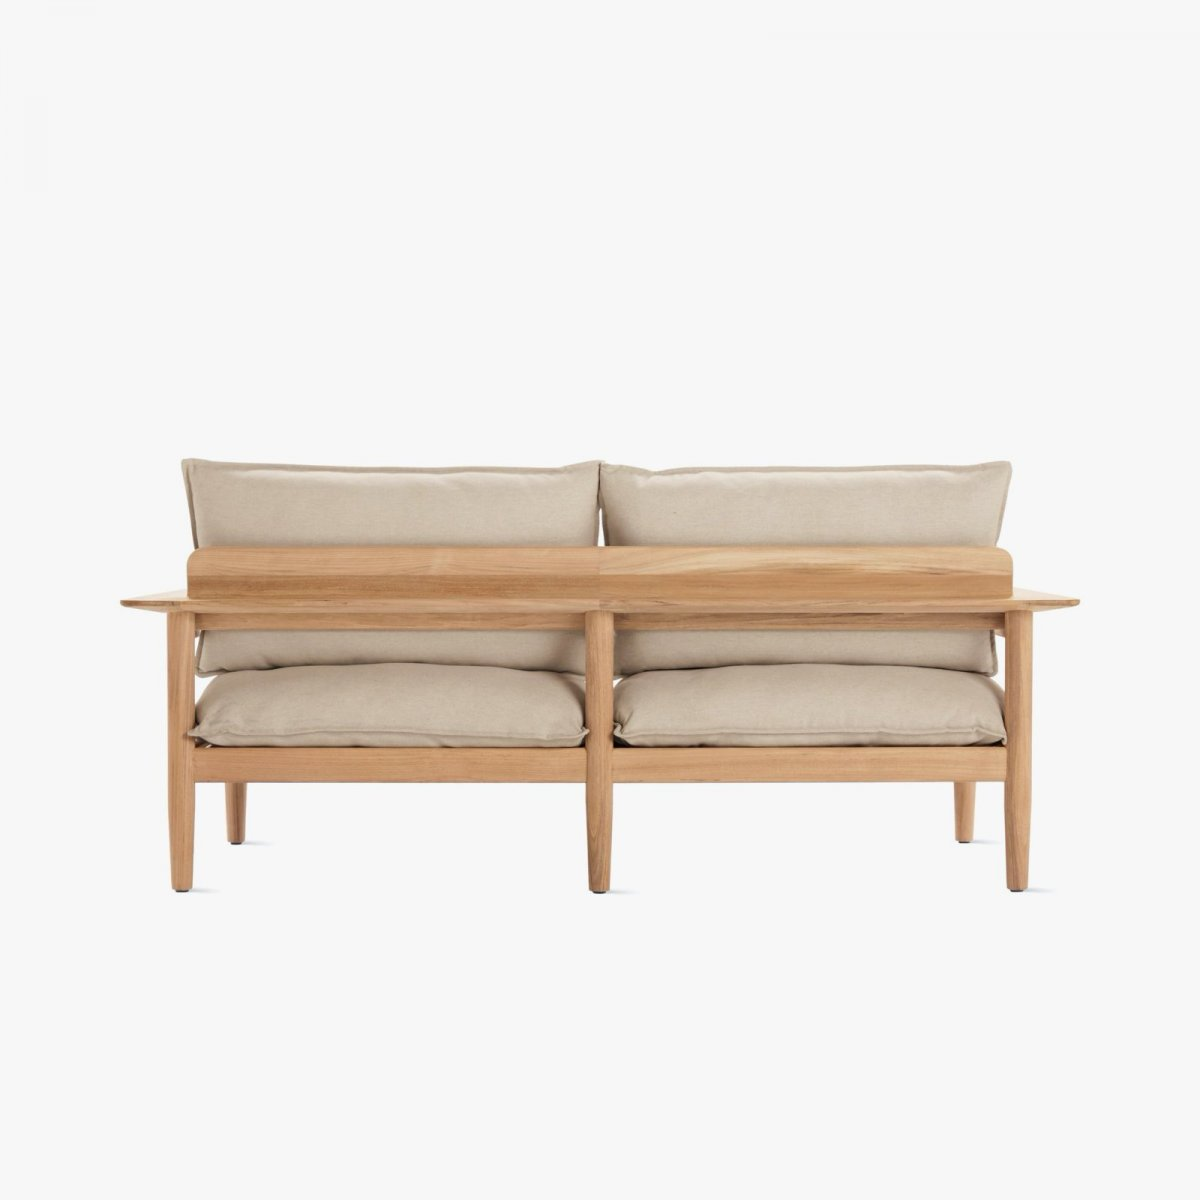 Terassi Two-Seater Sofa, papyrus, back view.